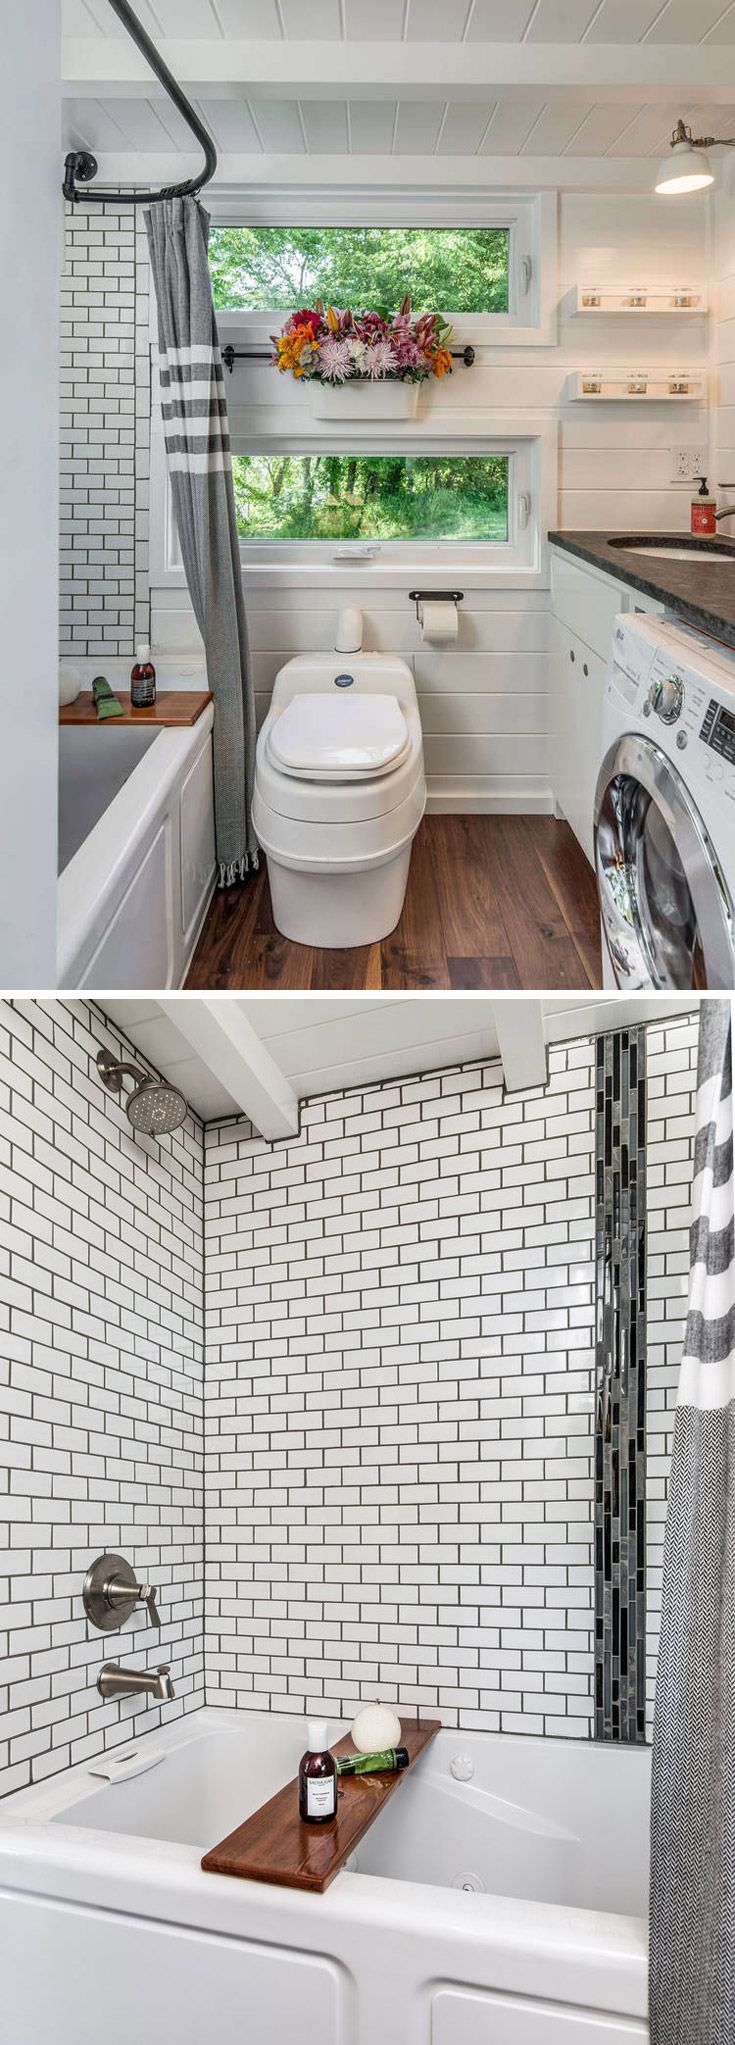 Bathroom Sinks Toilets And Tubs best 10+ tiny house bathroom ideas on pinterest | tiny homes